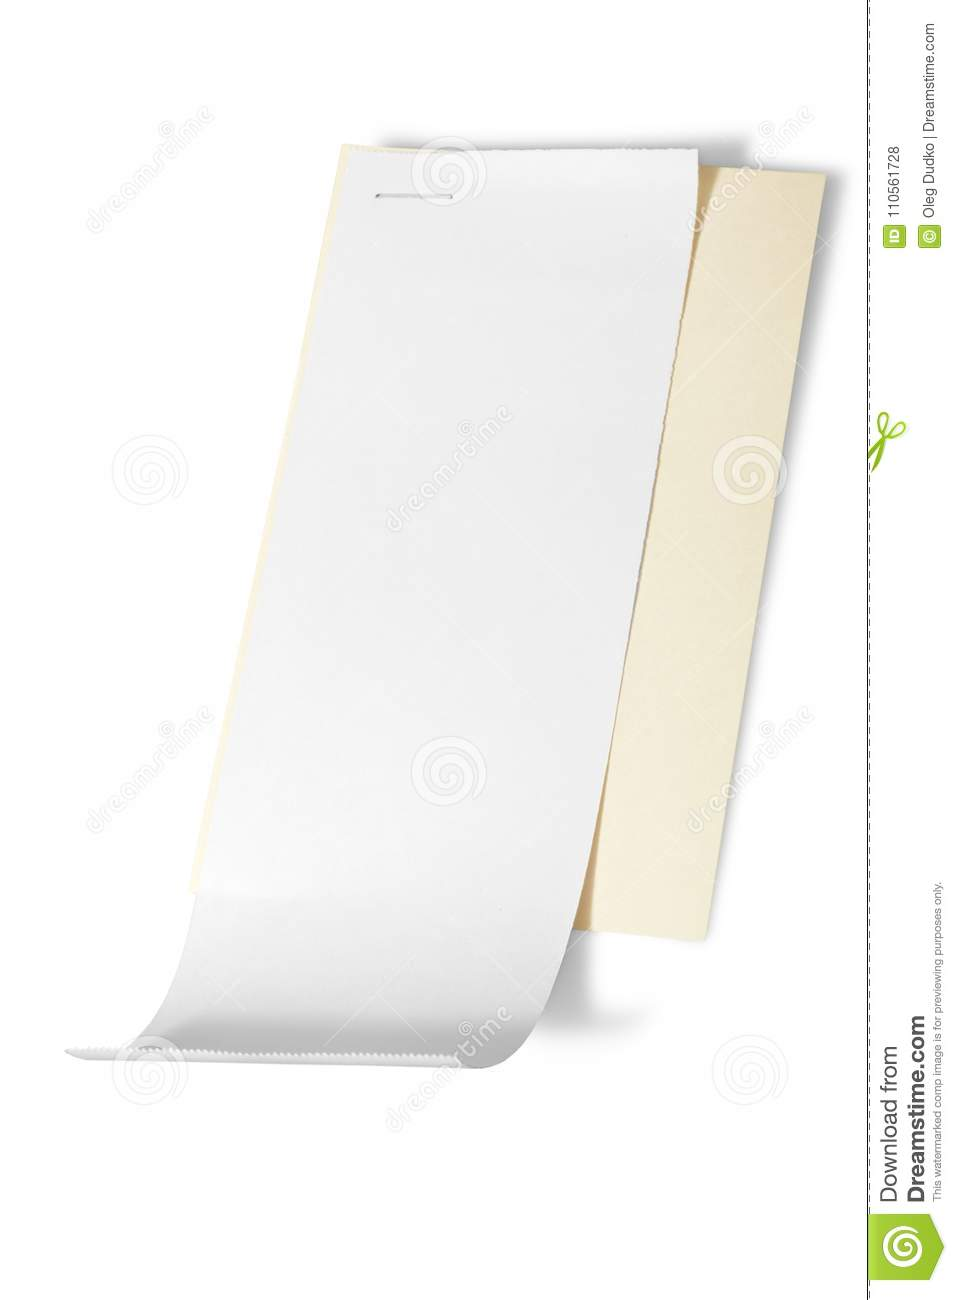 blank paper receipt stock photo image of store isolated 110561728